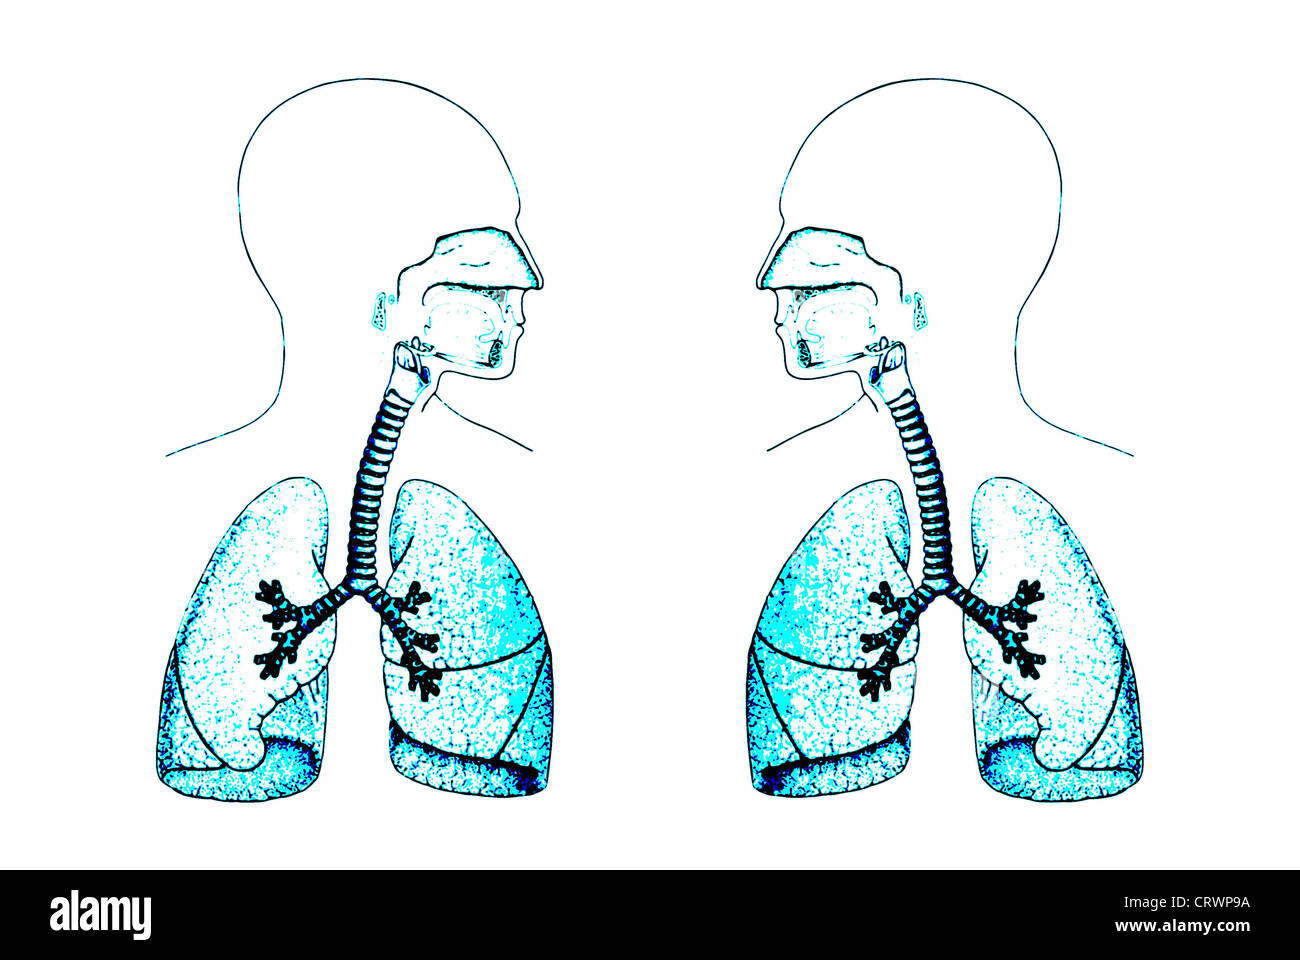 Lungs - Stock Image